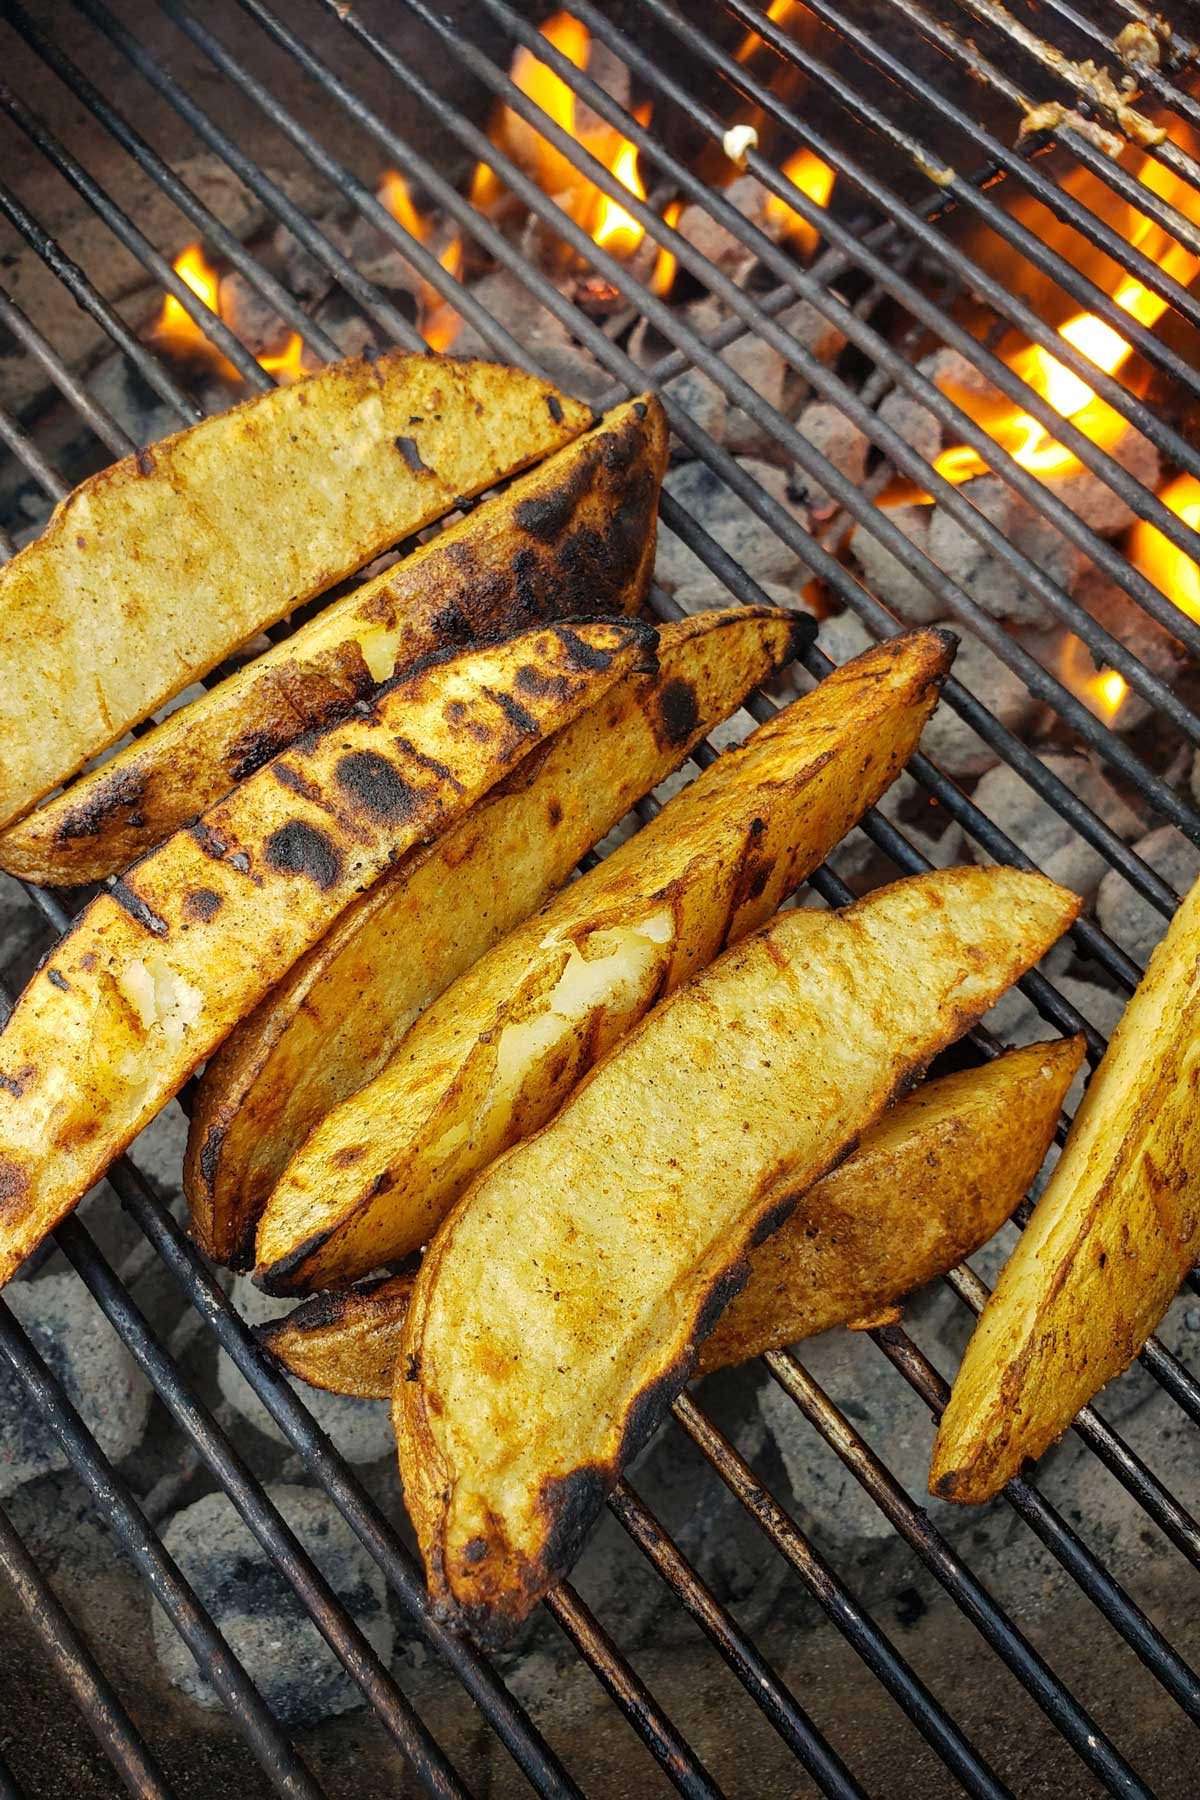 Grilled potato wedges hot and coming at ya straight from the grill! A smoky crisp outside, fluffy and creamy inside. Also try Barbecued Potato Wedges!!